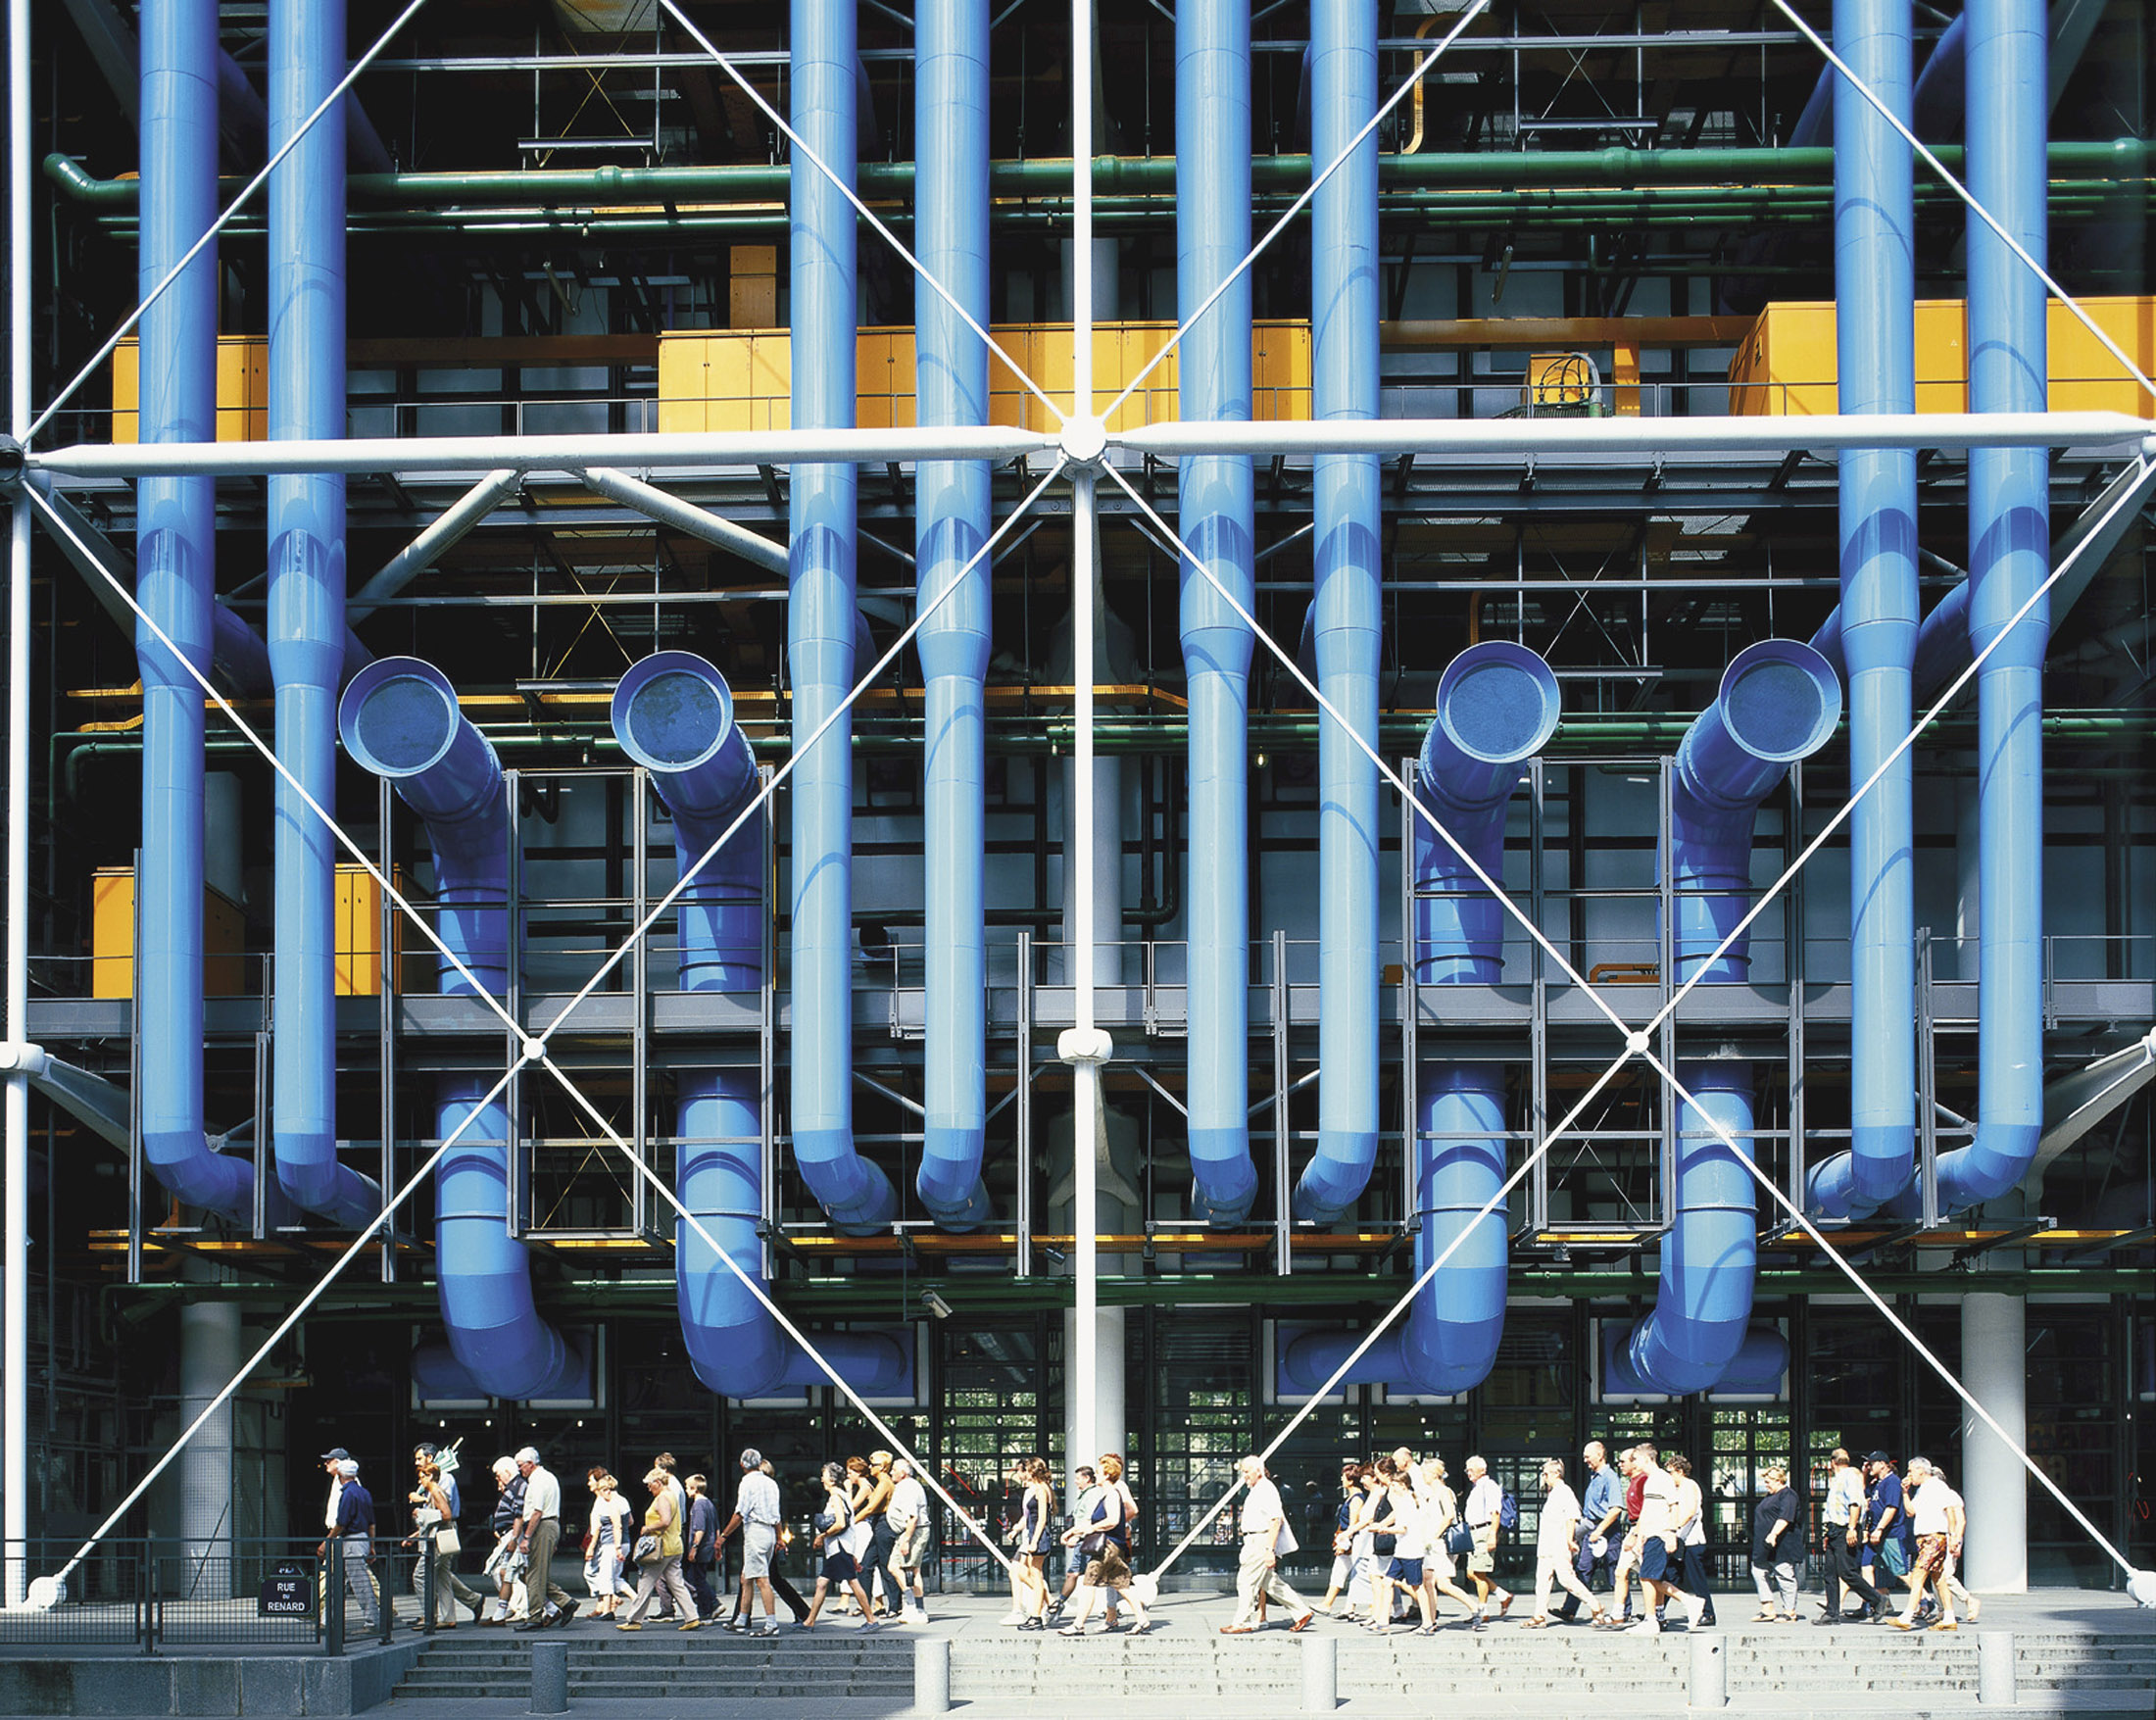 a facade of a contemporary art museum with large blue pipes, designed by Richard Rogers